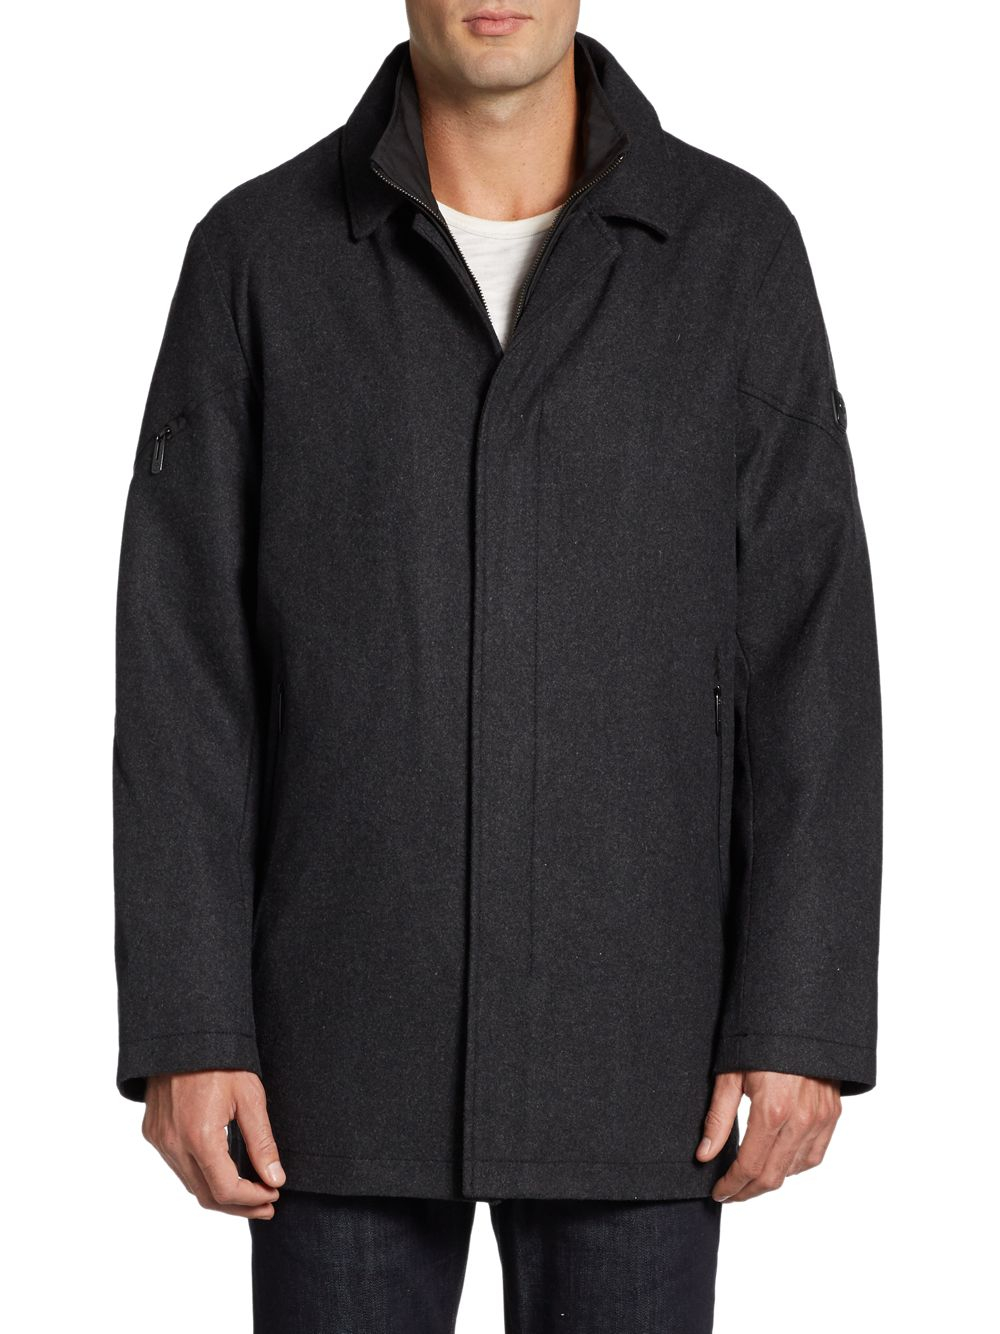 Tumi Waterproof Wool Blend Jacket In Black For Men Lyst